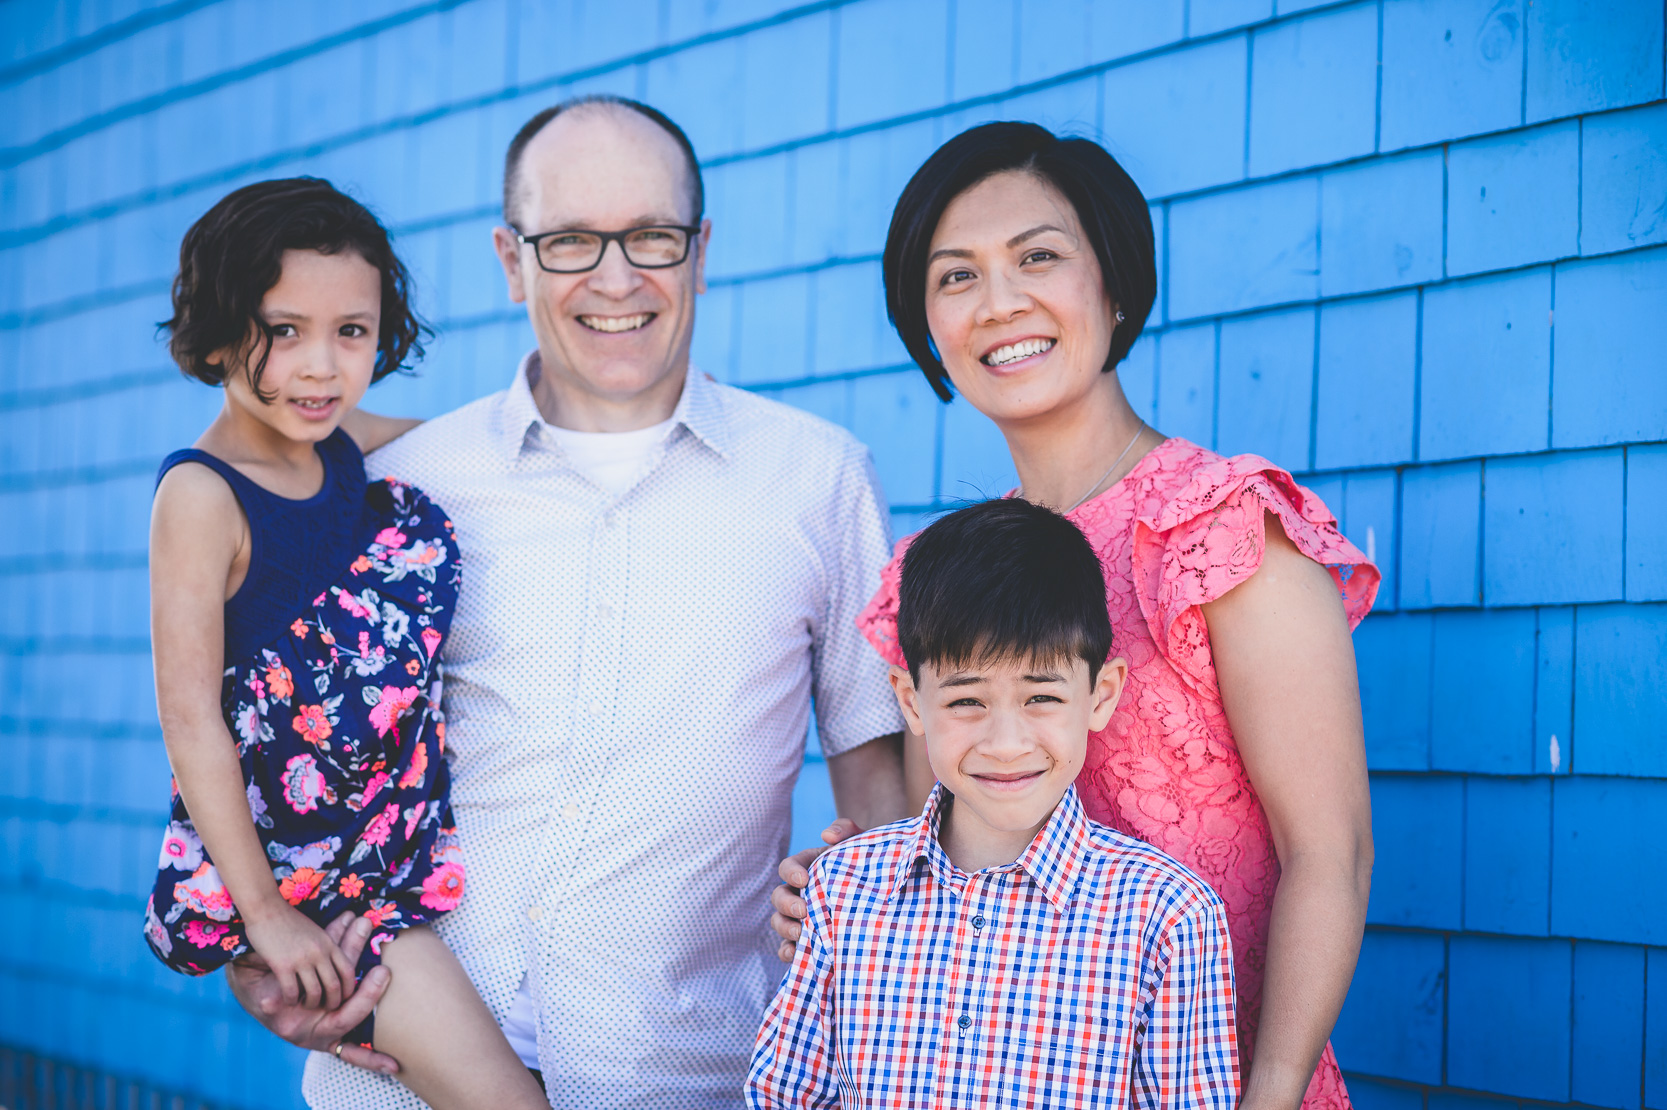 Nigel Fearon Photography | The Lavery Family-7971.jpg